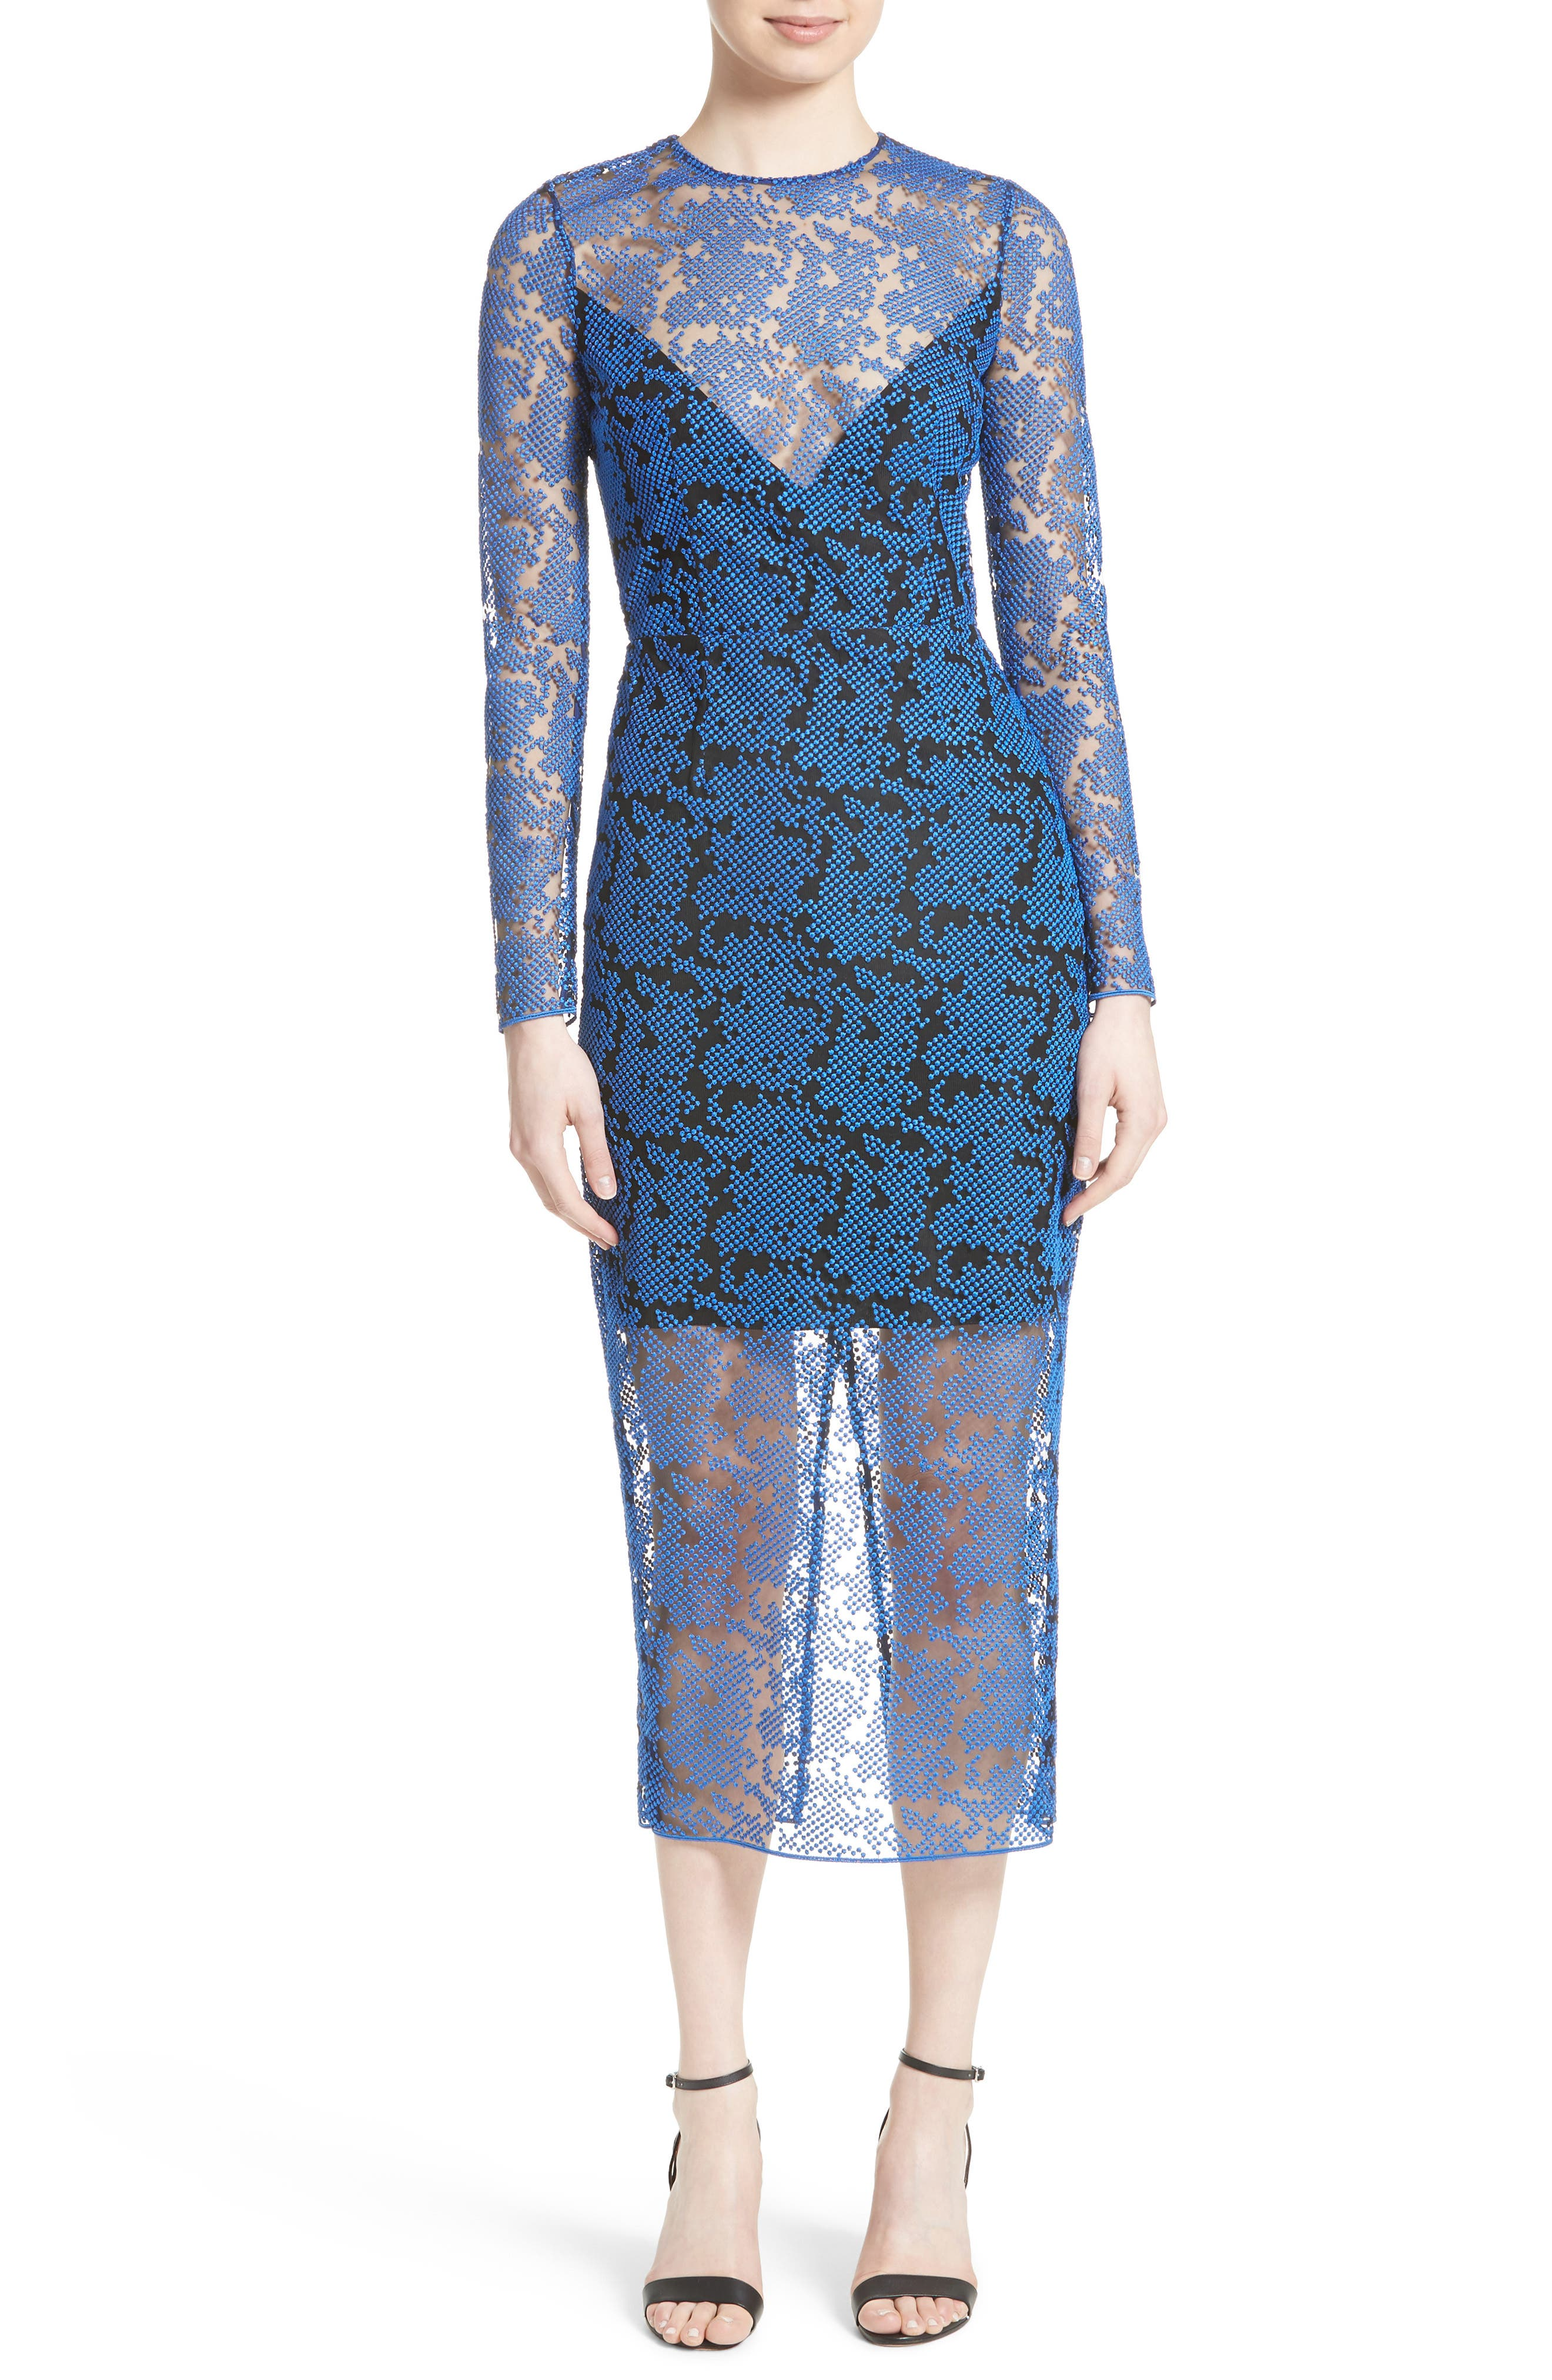 DIANE VON FURSTENBERG Embroidered Mesh Midi Dress